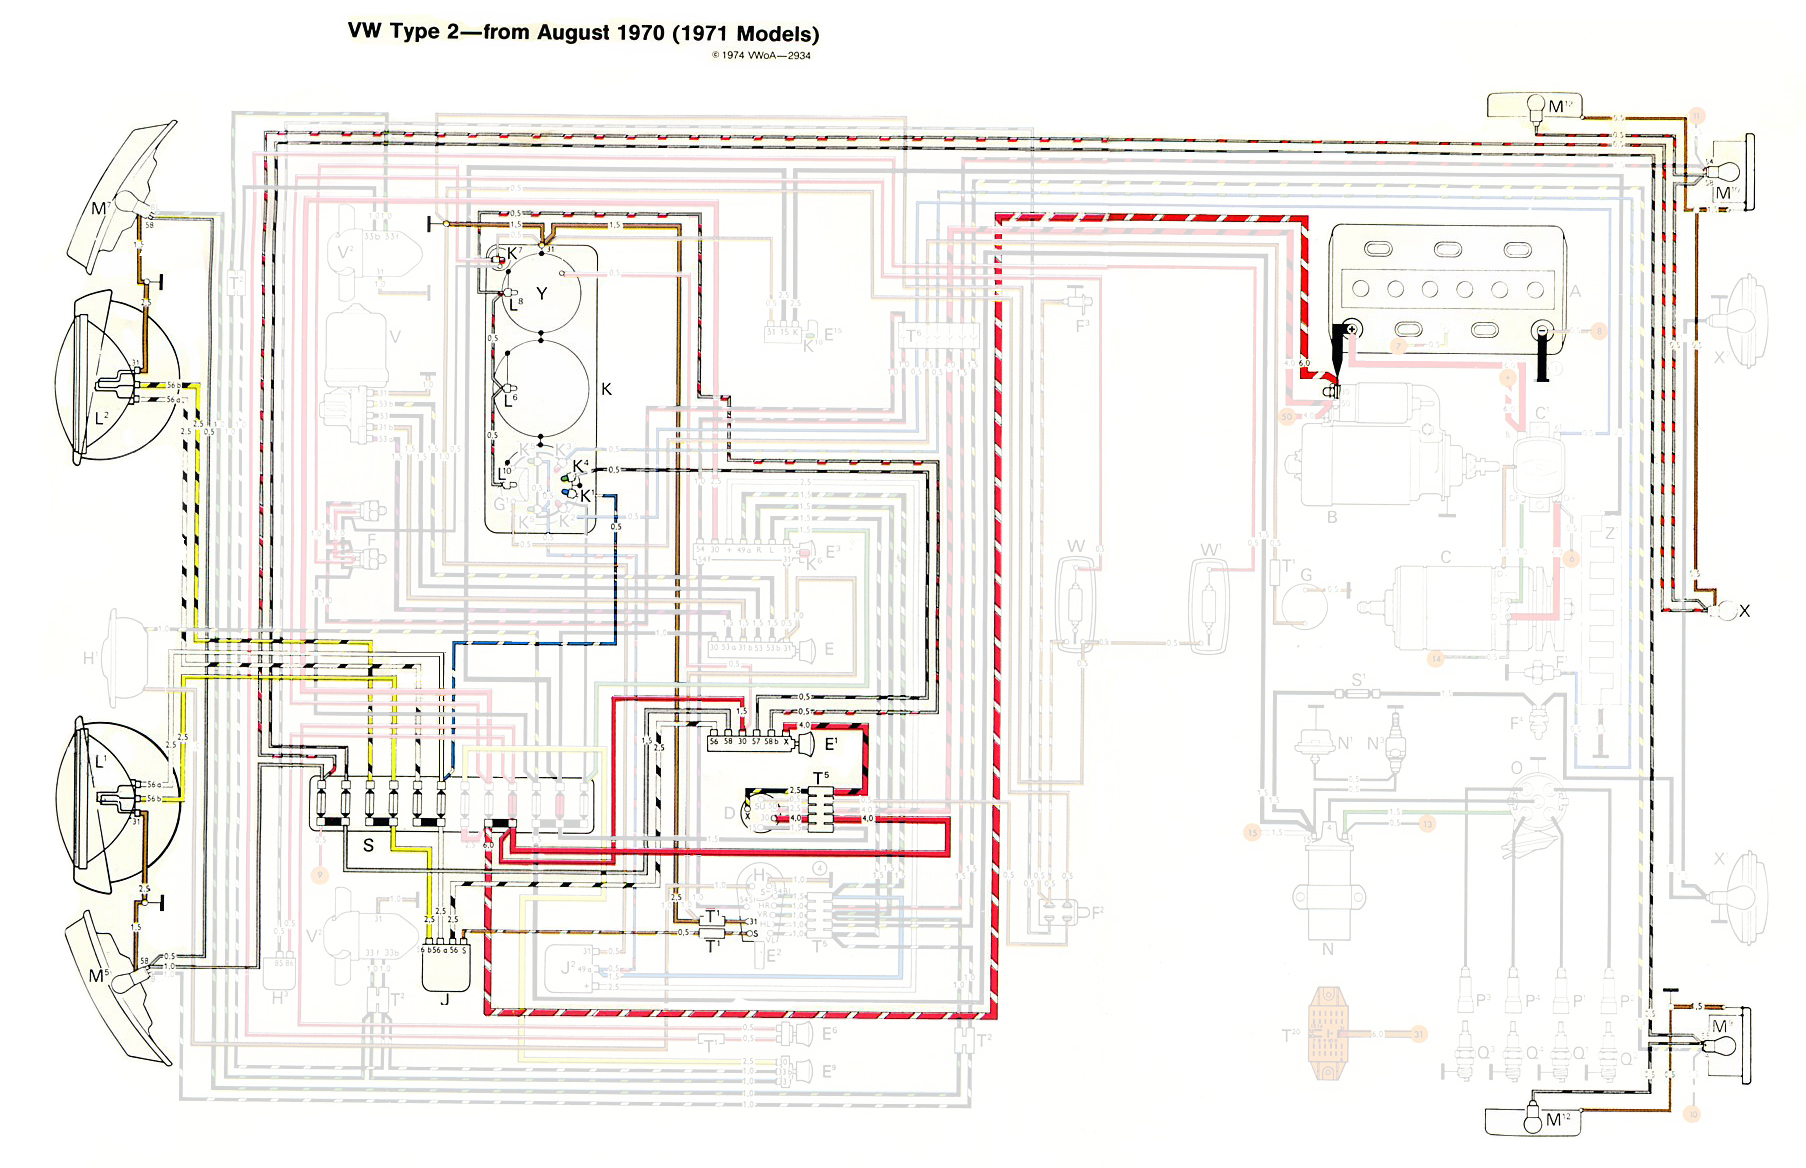 Wiring Diagram For 1968 Vw Beetle on corvair alternator wiring diagram